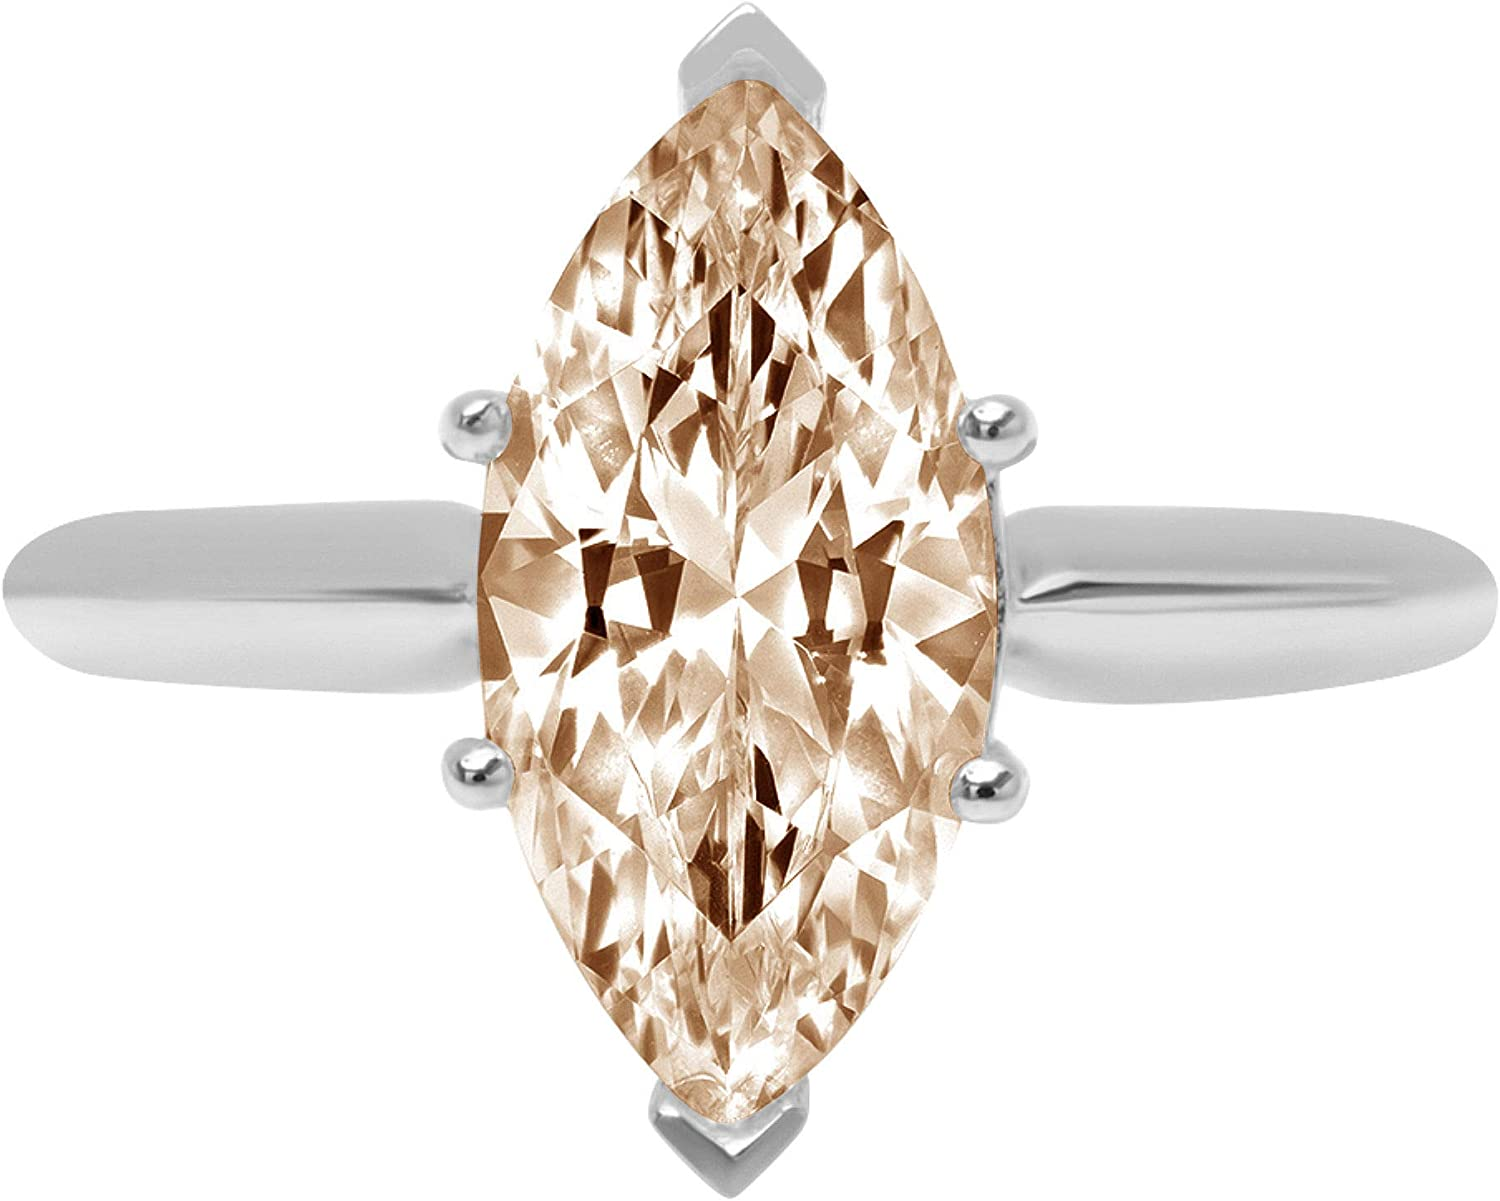 2.4ct Brilliant Marquise Cut Solitaire Brown Champagne Simulated Diamond Cubic Zirconia Ideal VVS1 D 6-Prong Engagement Wedding Bridal Promise Anniversary Ring Solid 14k White Gold for Women